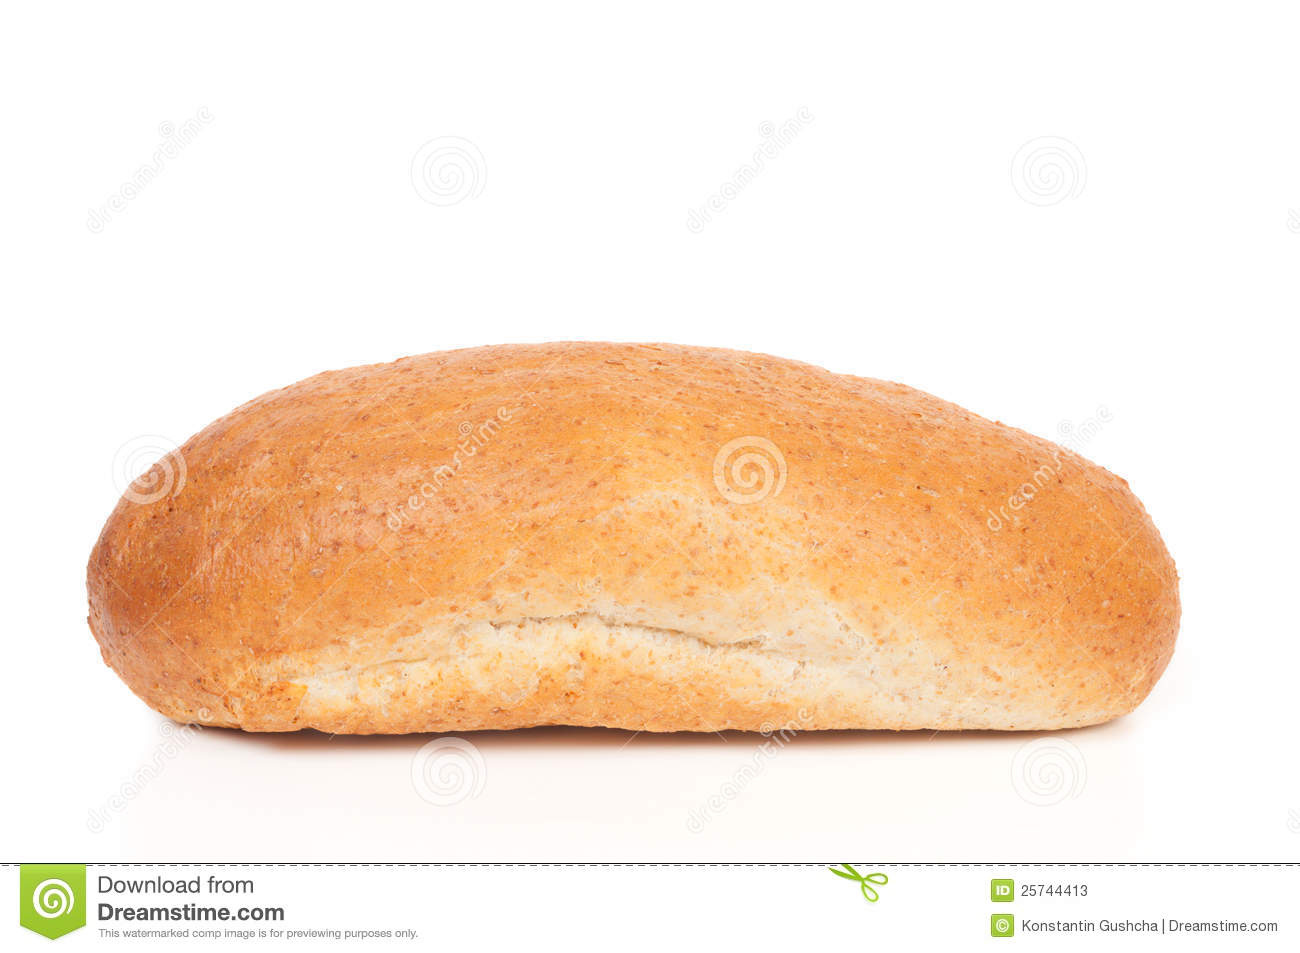 Loaf of bread with bran isolated on white